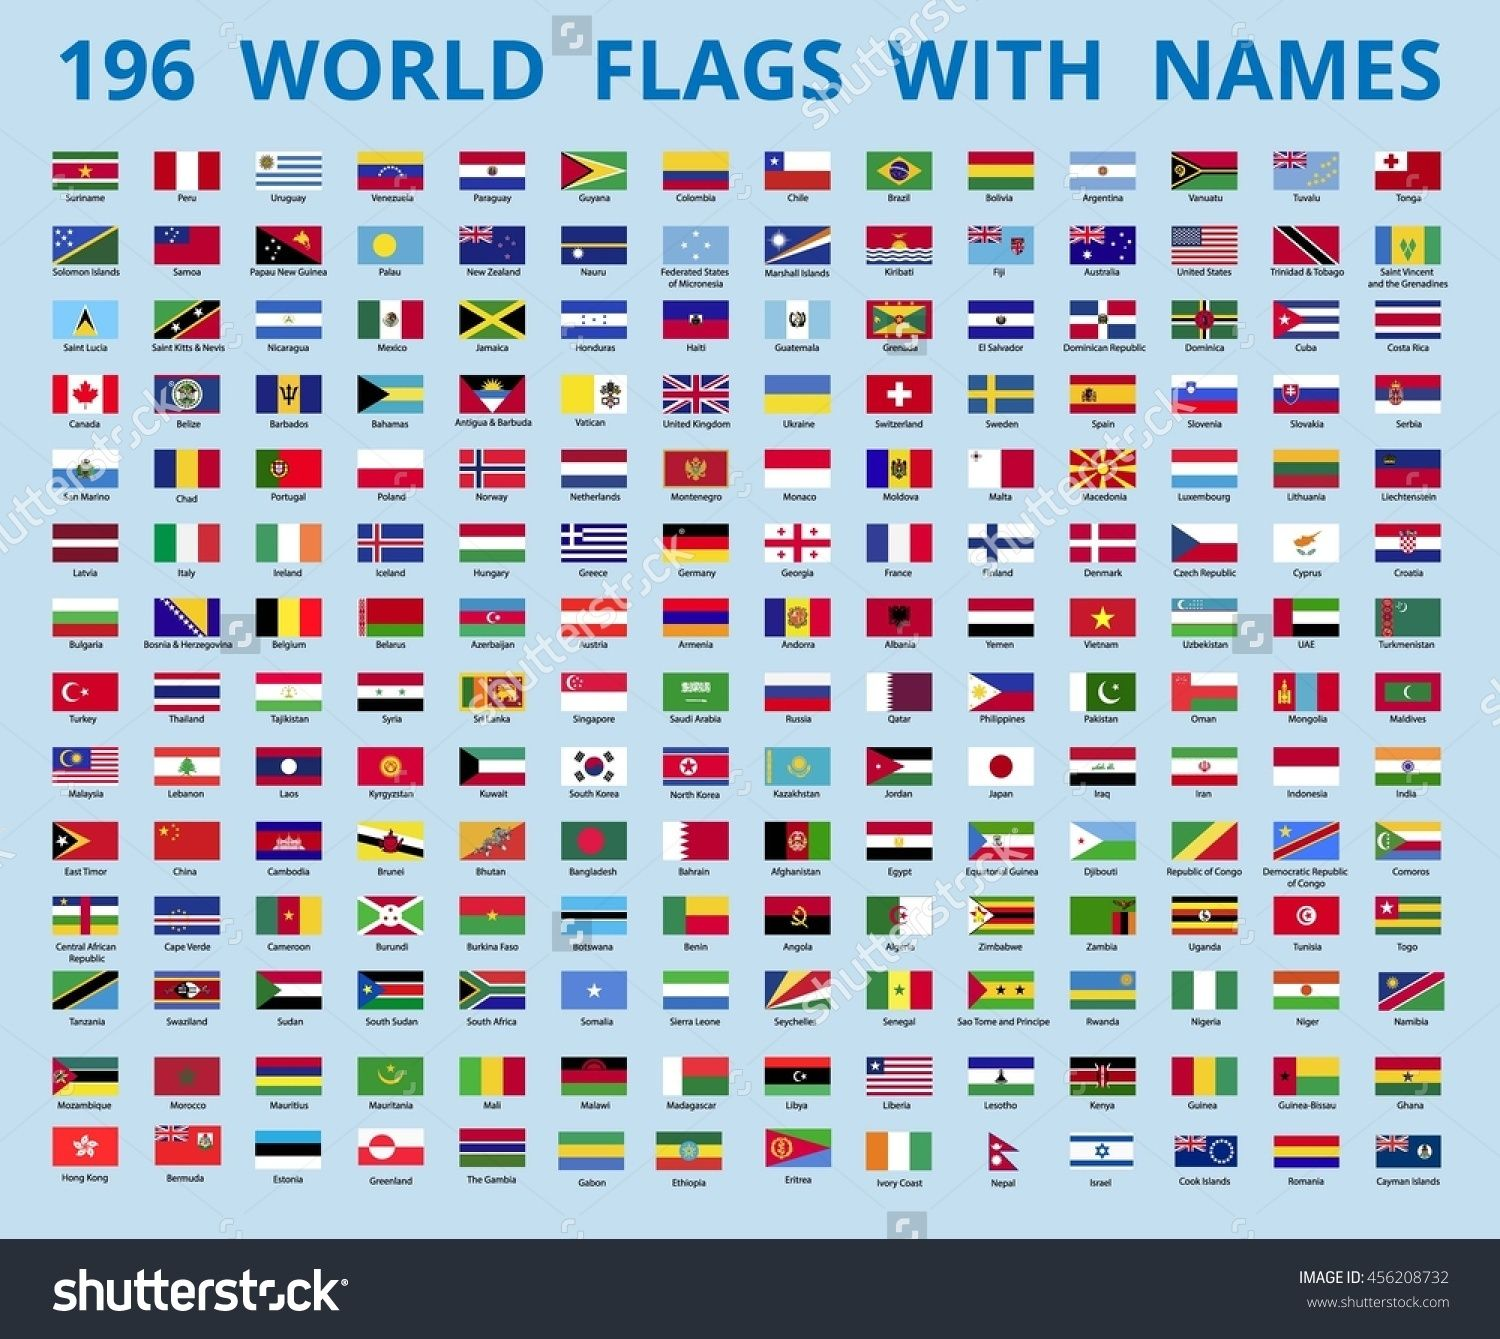 Flags Of The World With The Name Of The Country Vector Illustration Flags With Names World Flags With Names Flags Of The World